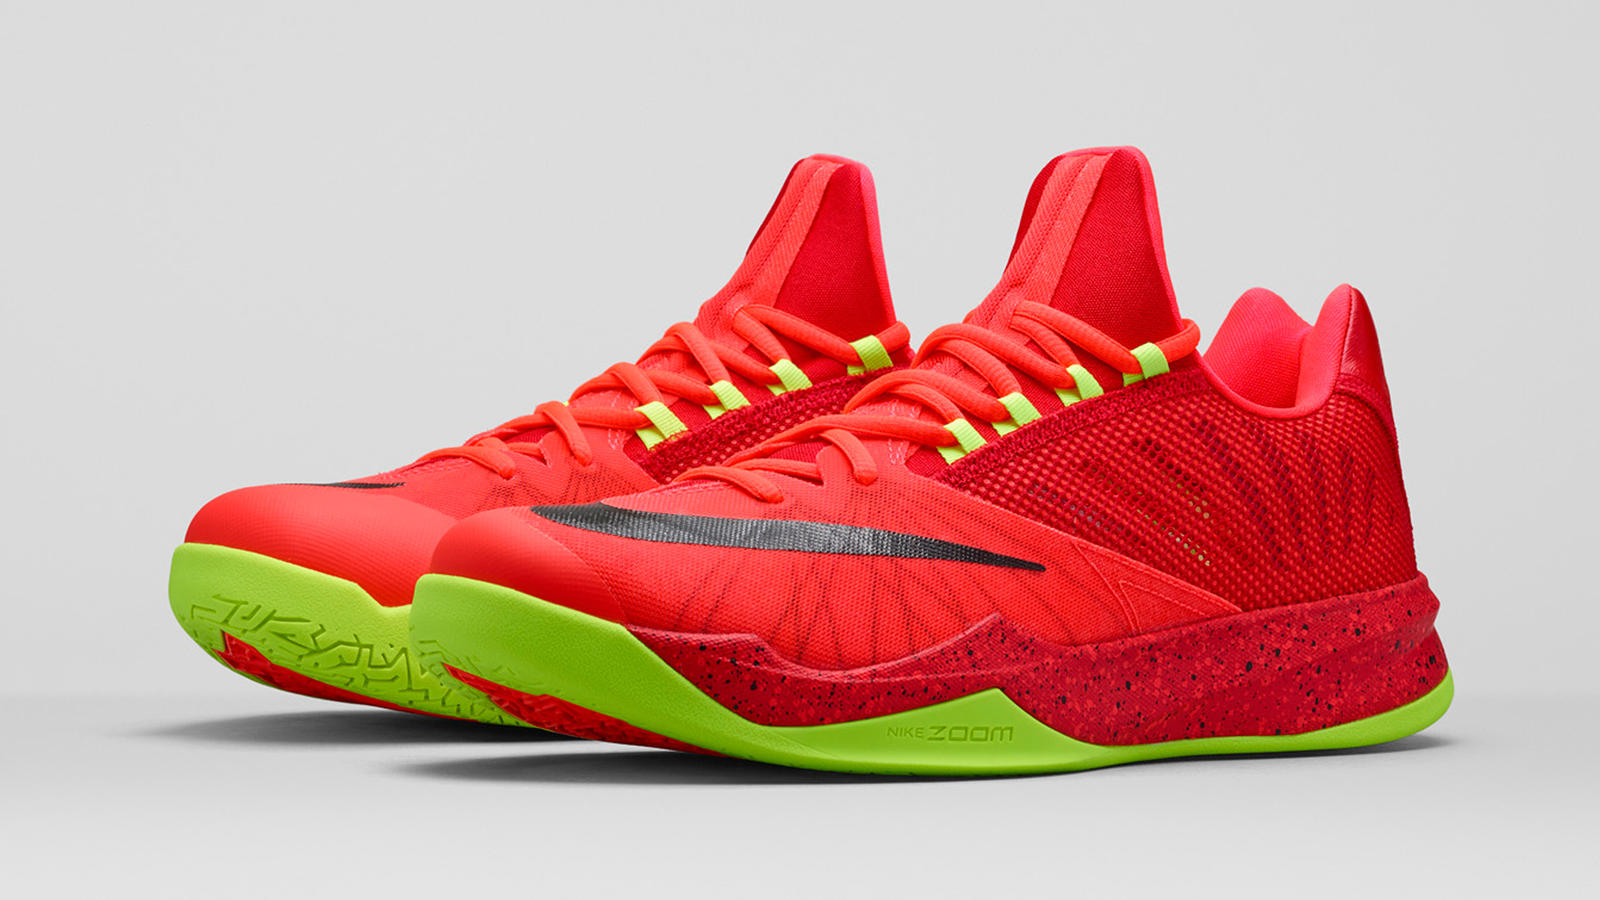 James Harden Basketball Shoes For Men